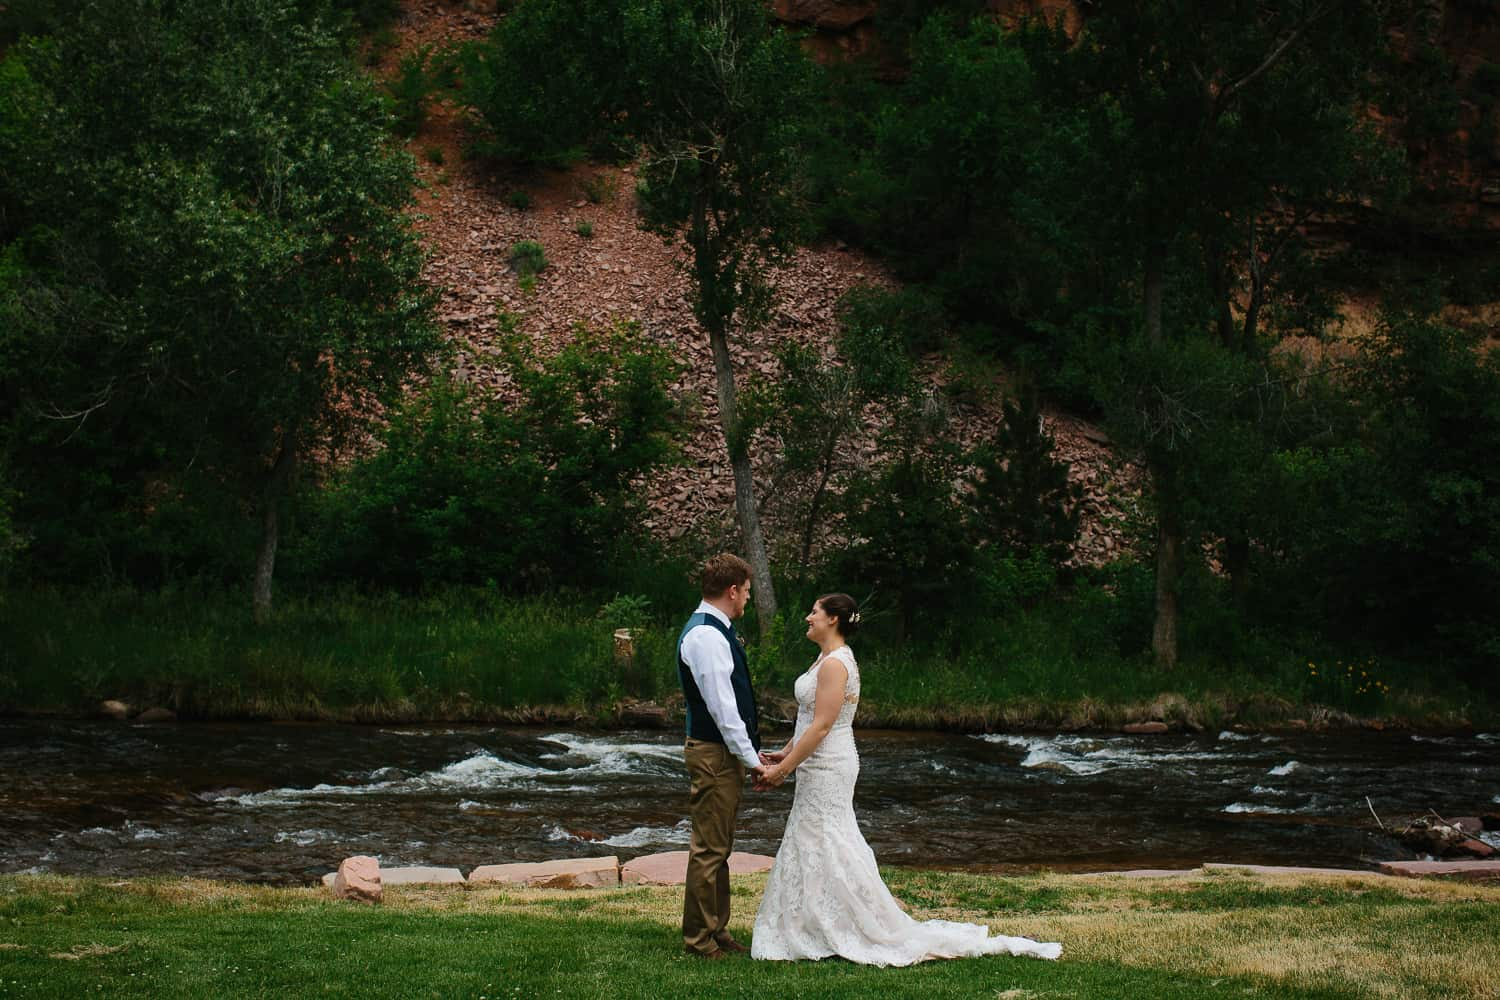 Colleen and Ryan – Married at Planet Bluegrass